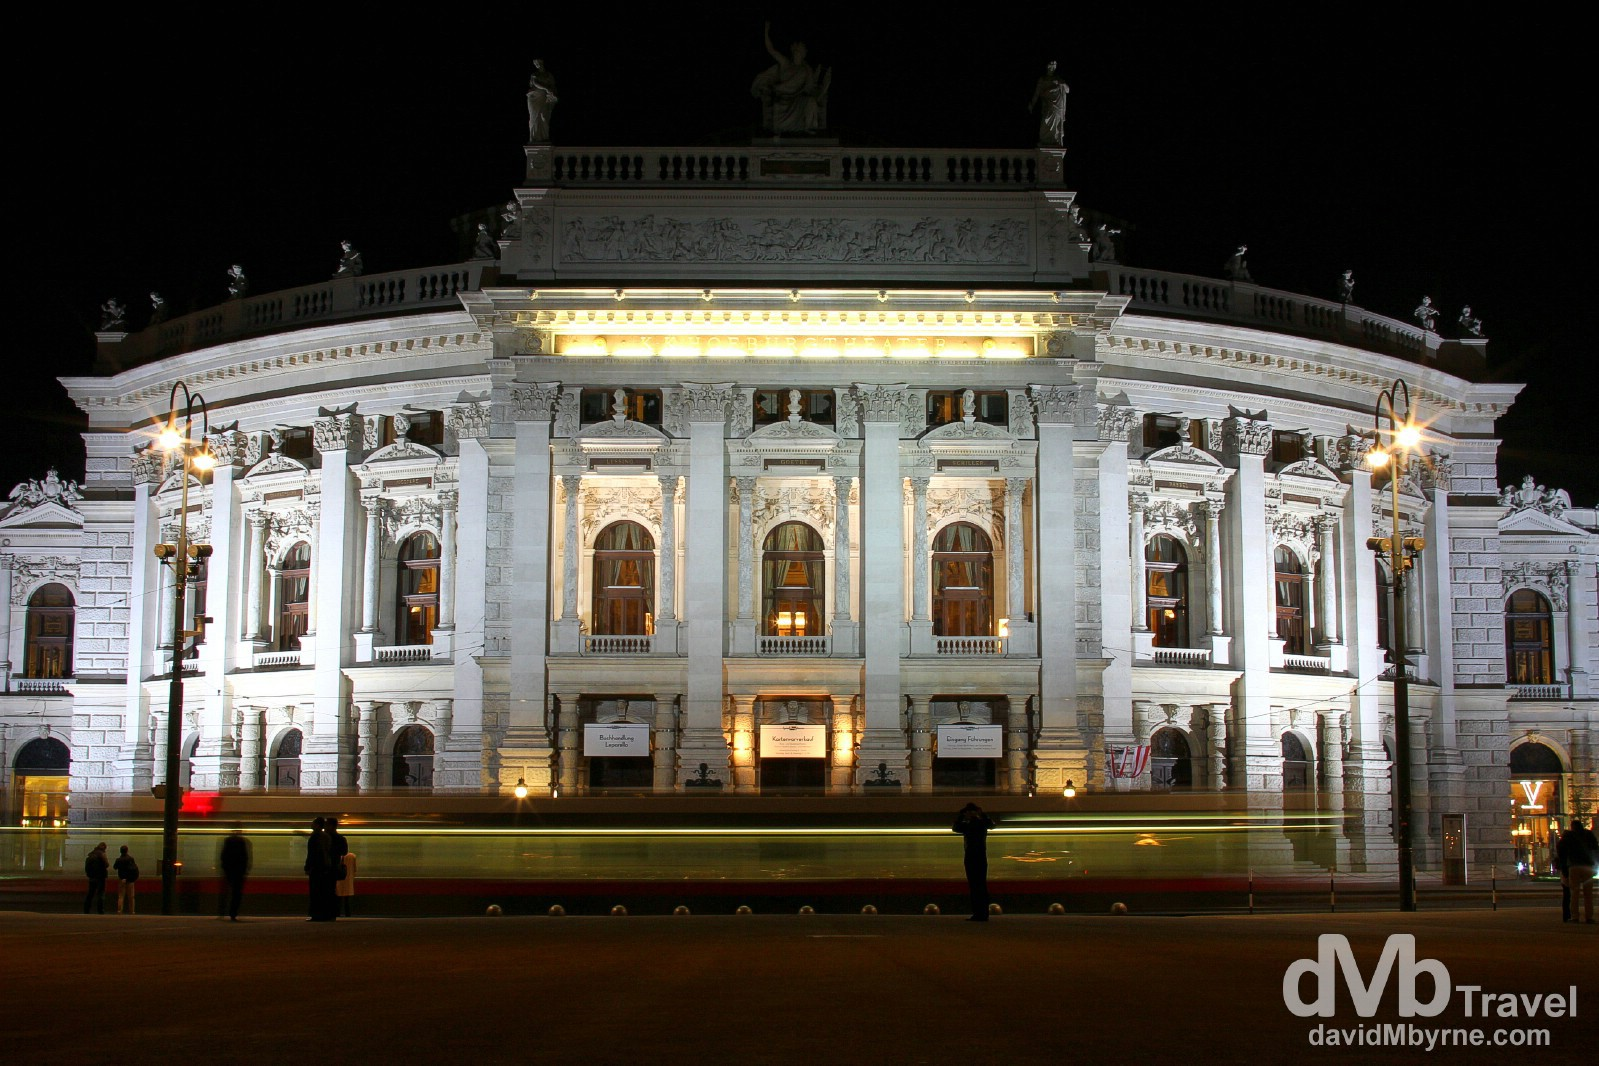 A tram passing in front of Burgtheater in Vienna, Austria. march 29th, 2014.